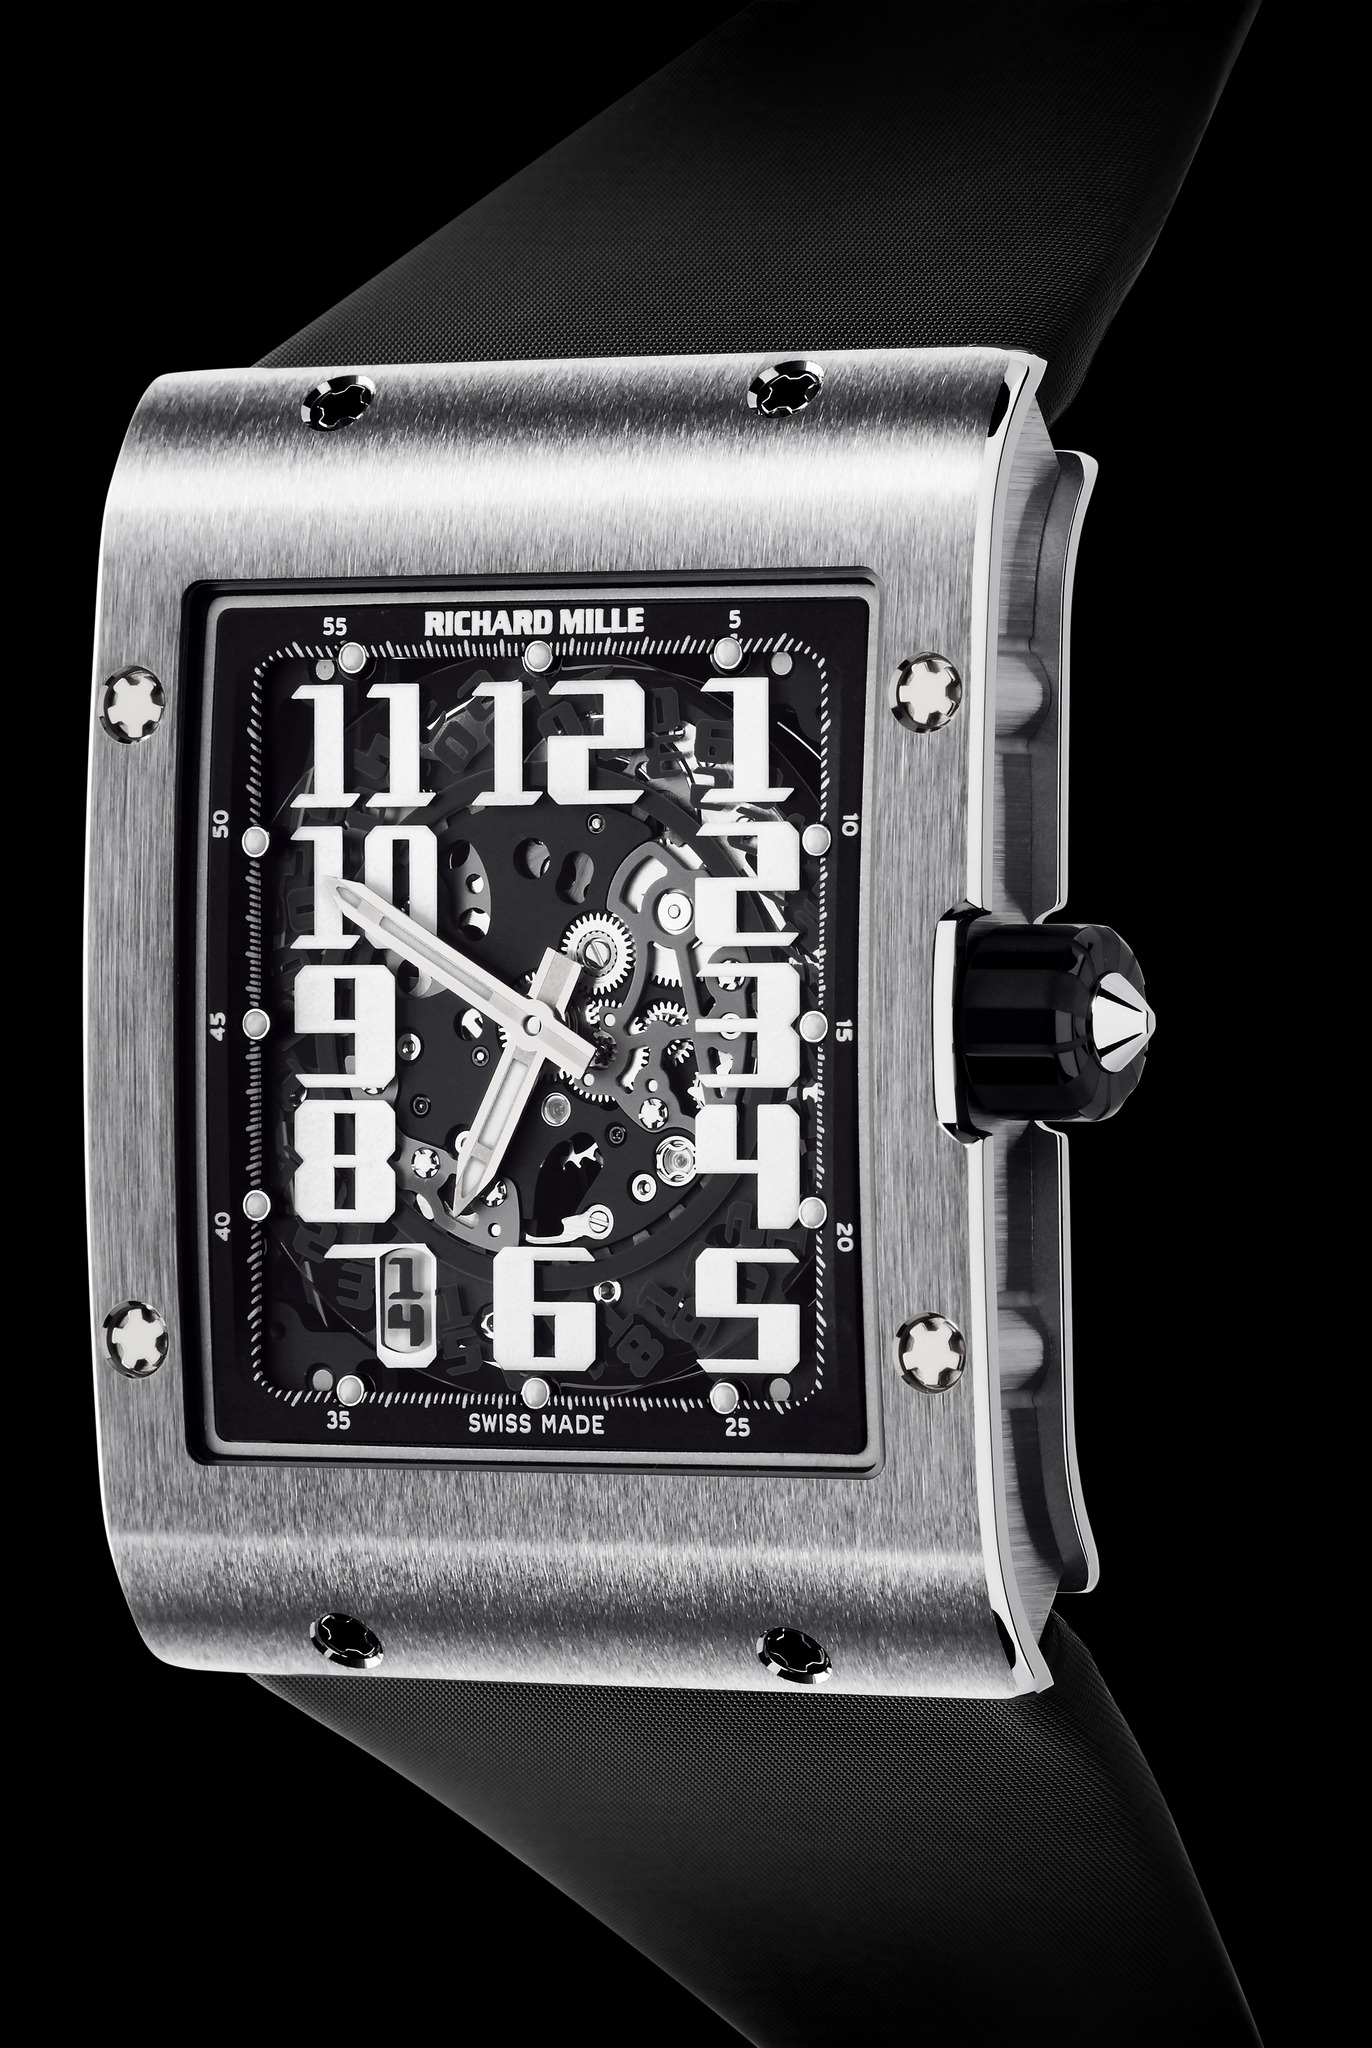 Replica Richard Mille RM 016 Automatic Titanium Watch